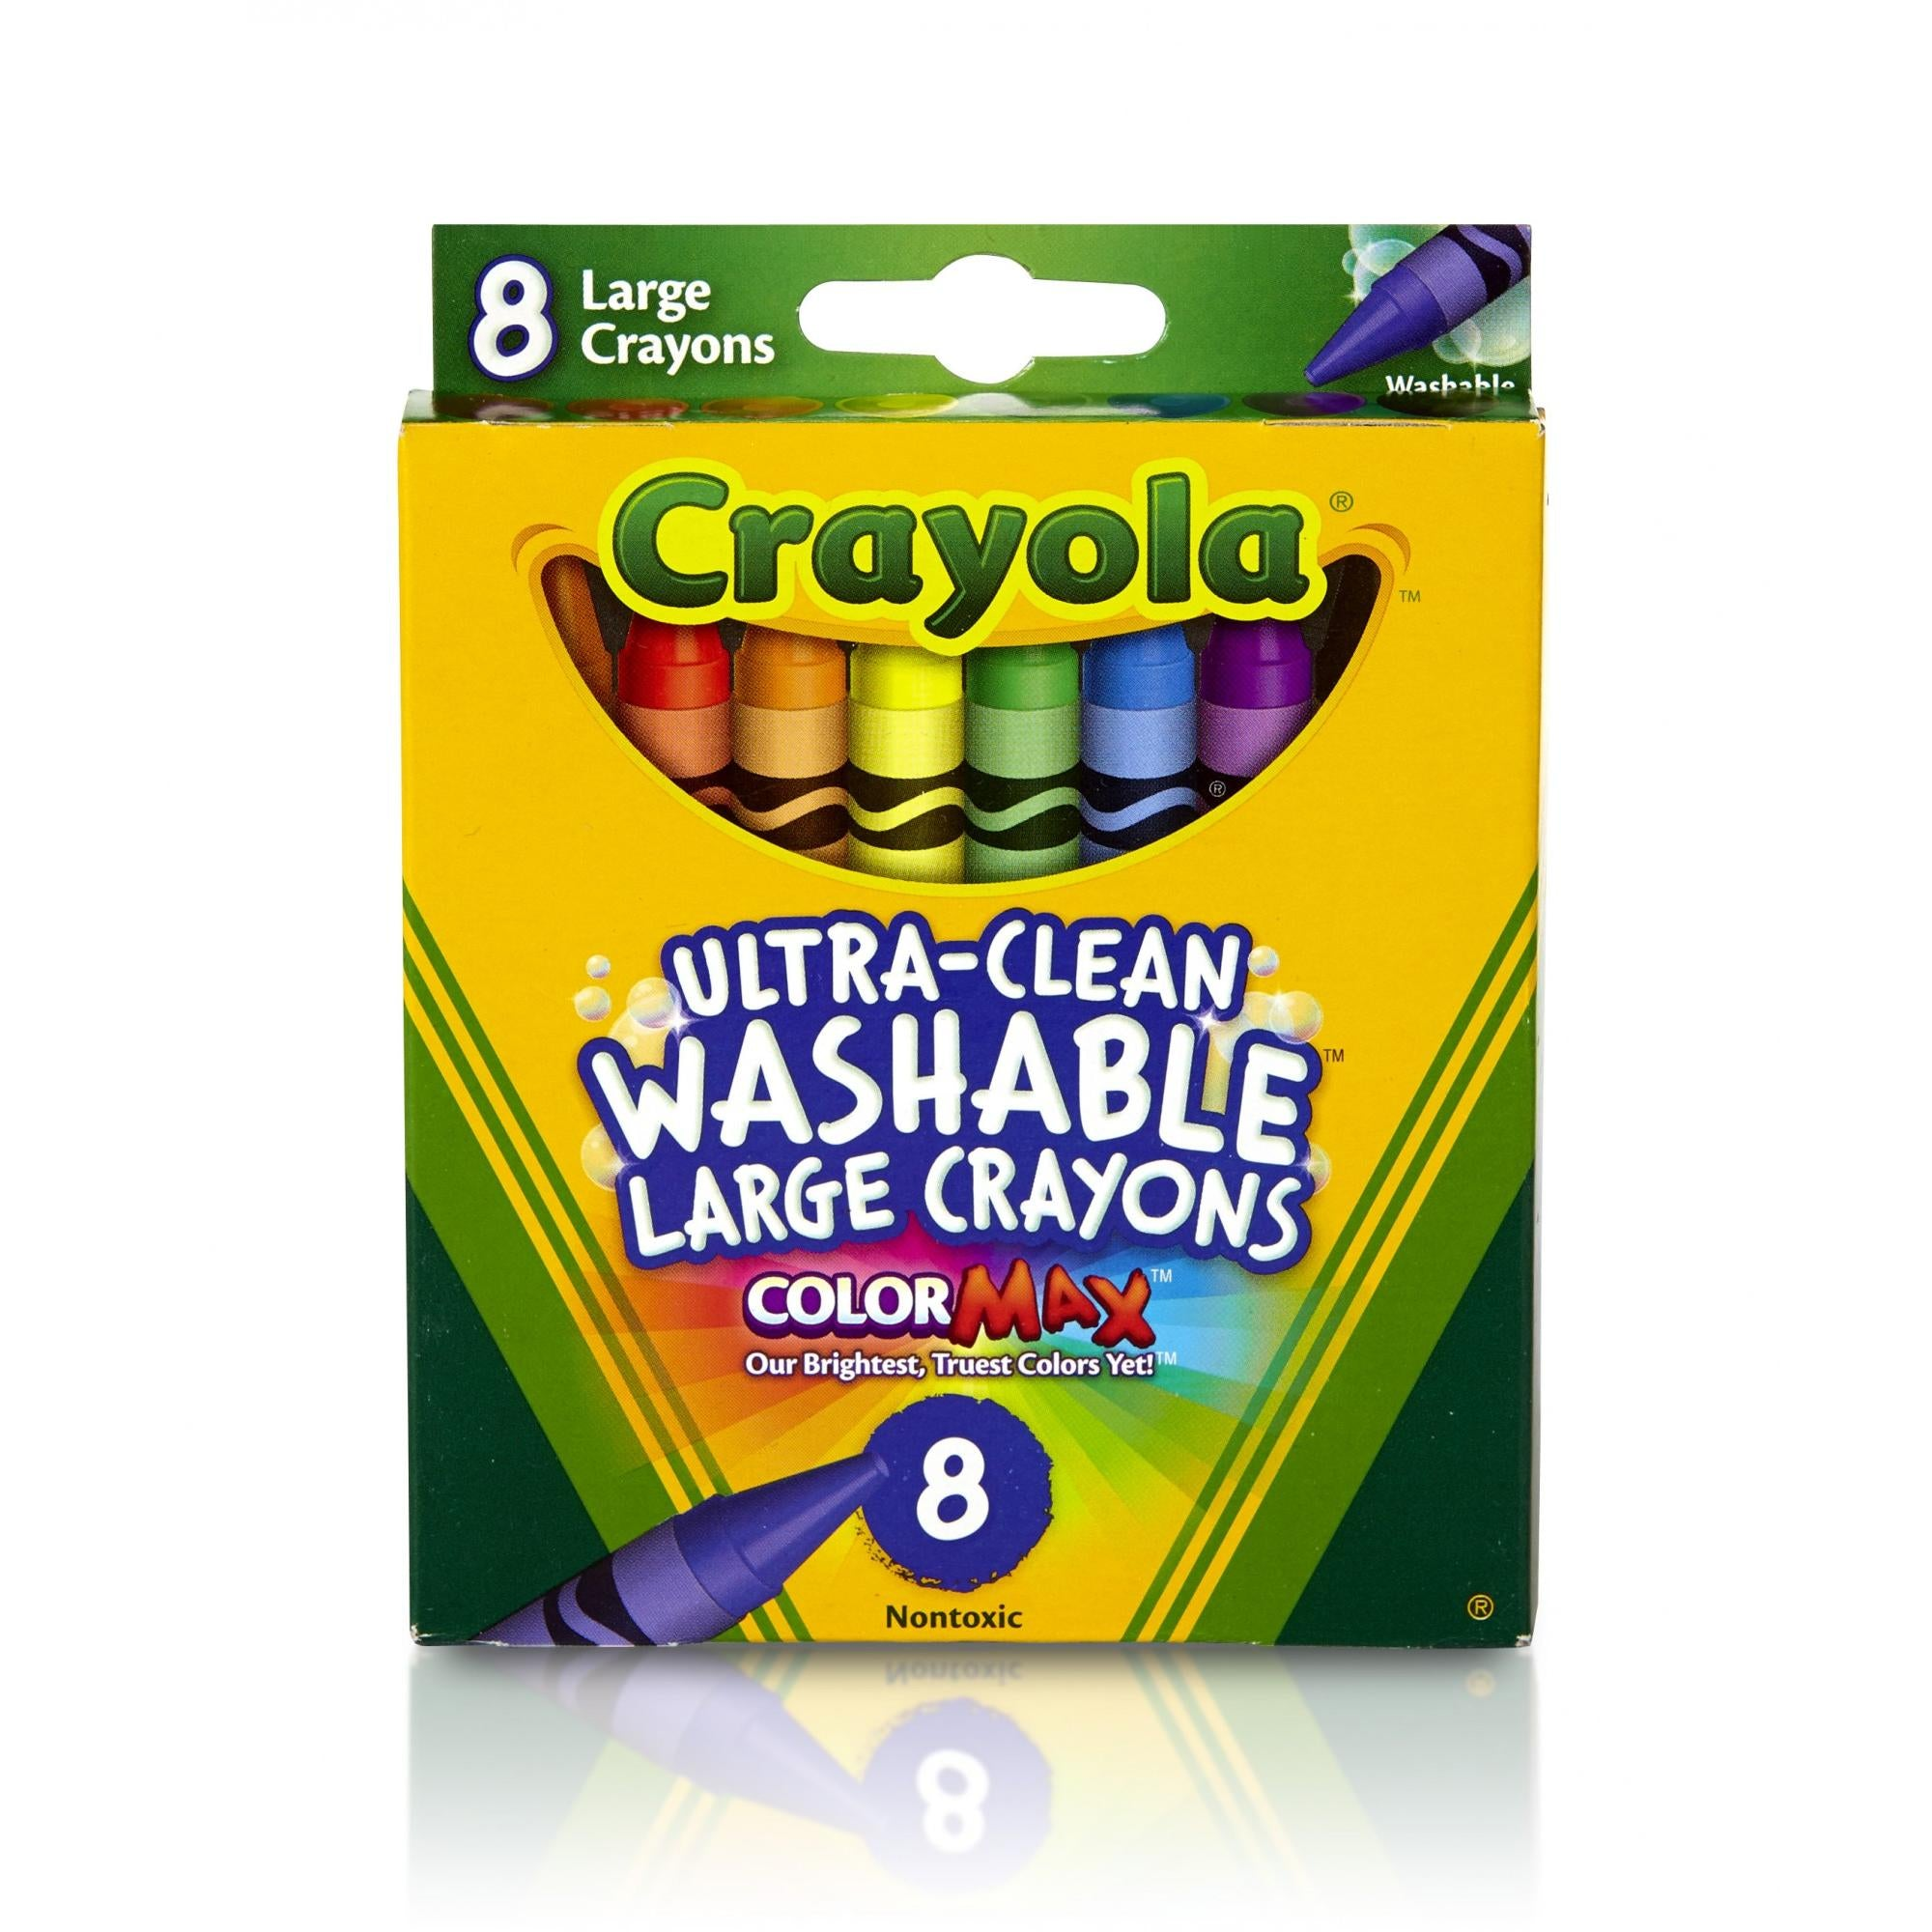 Crayola Ultra-Clean Washable Large 8ct Crayons, Assorted Colors